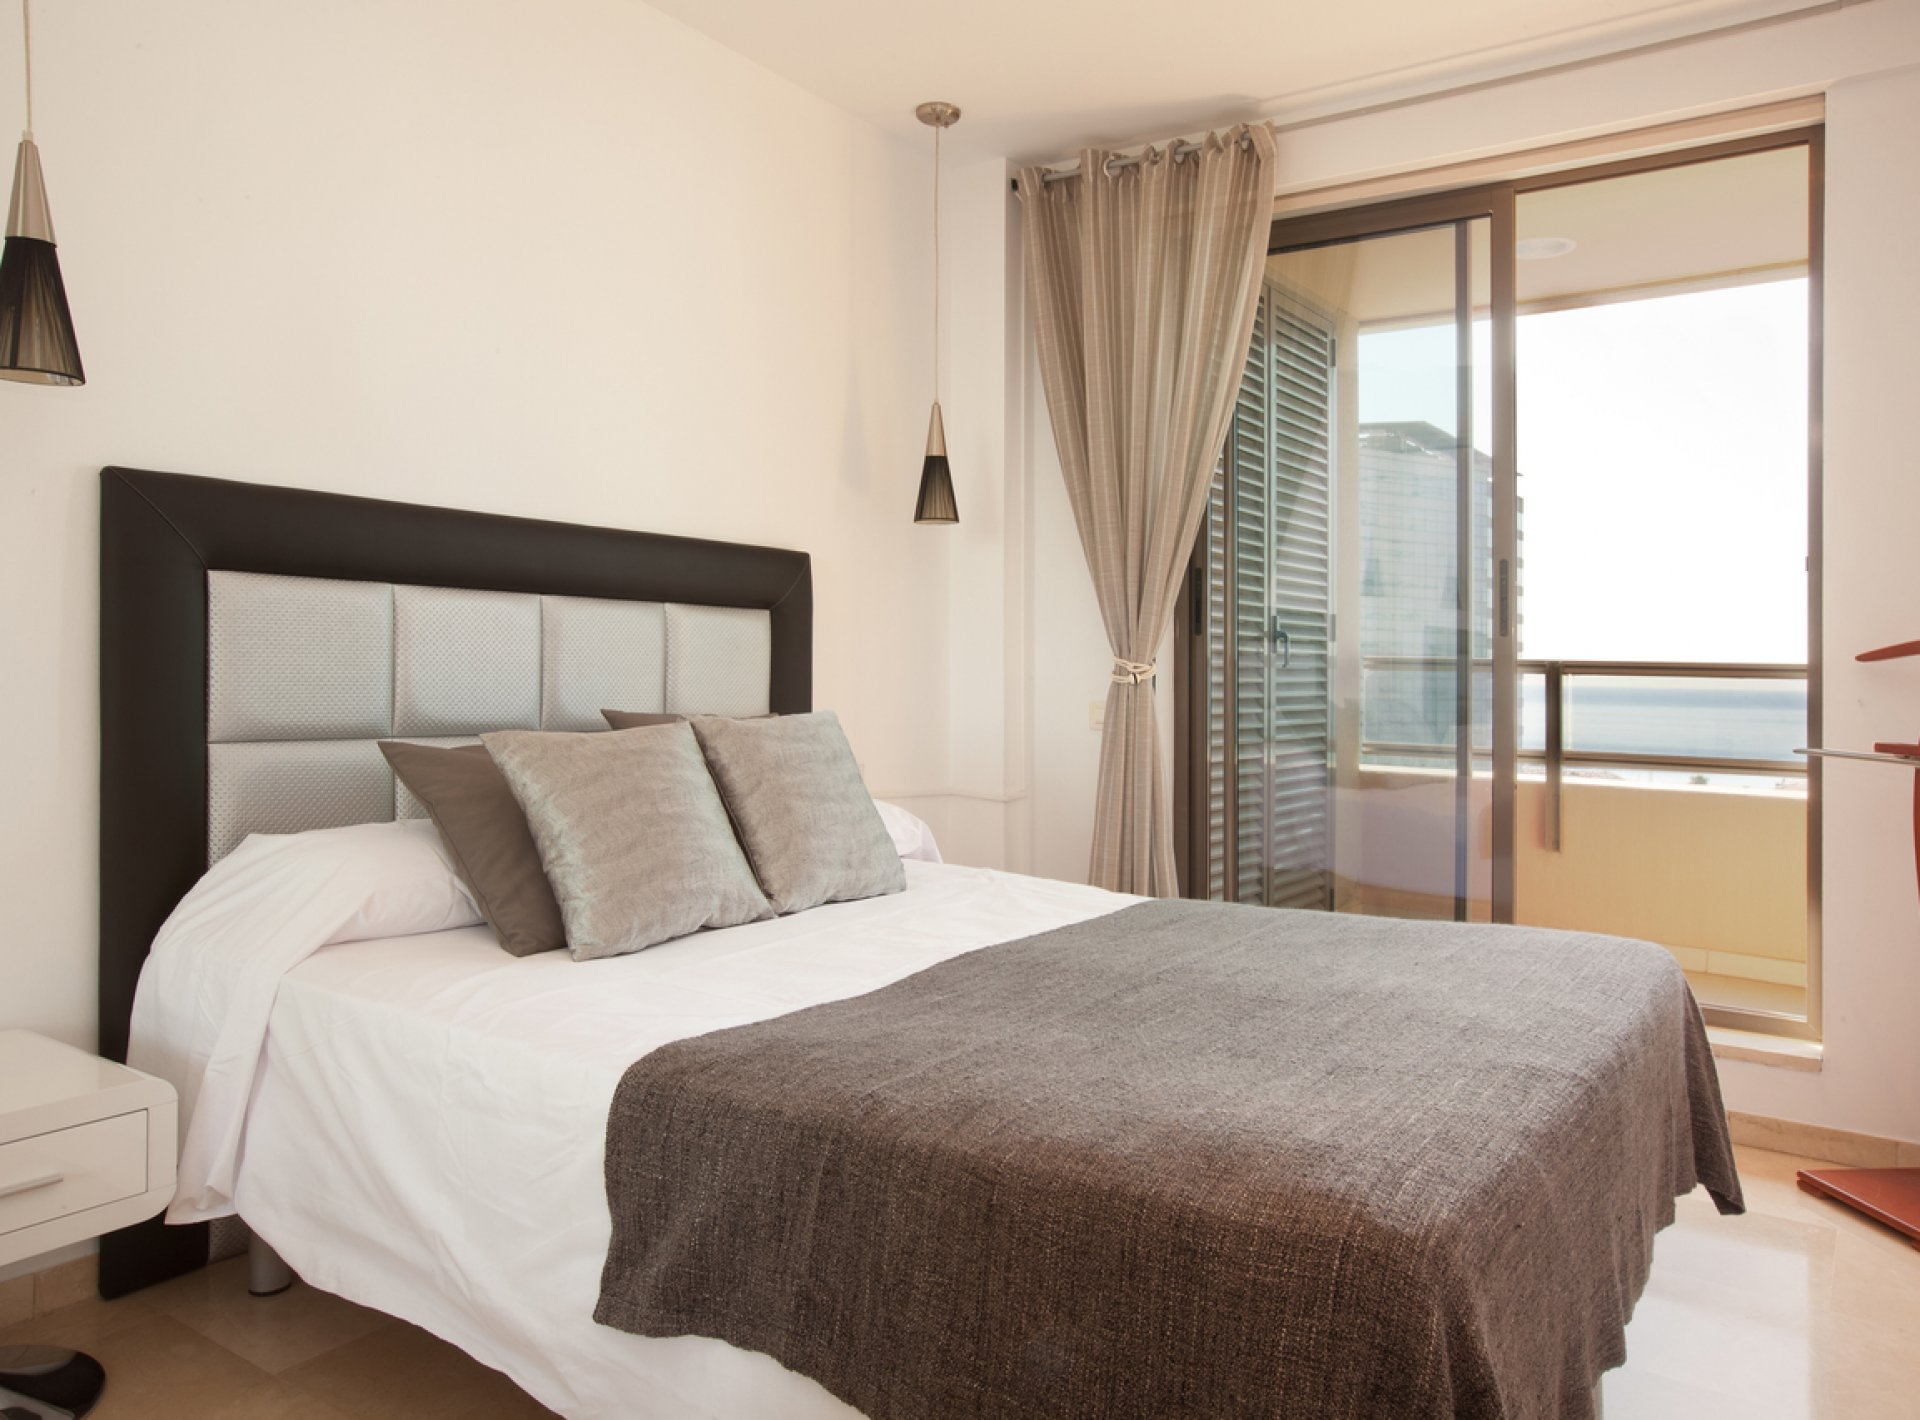 Modern 4-Bedroom Holiday Apartment to Rent with Balcony and Sea Views near the Beach in Barcelona